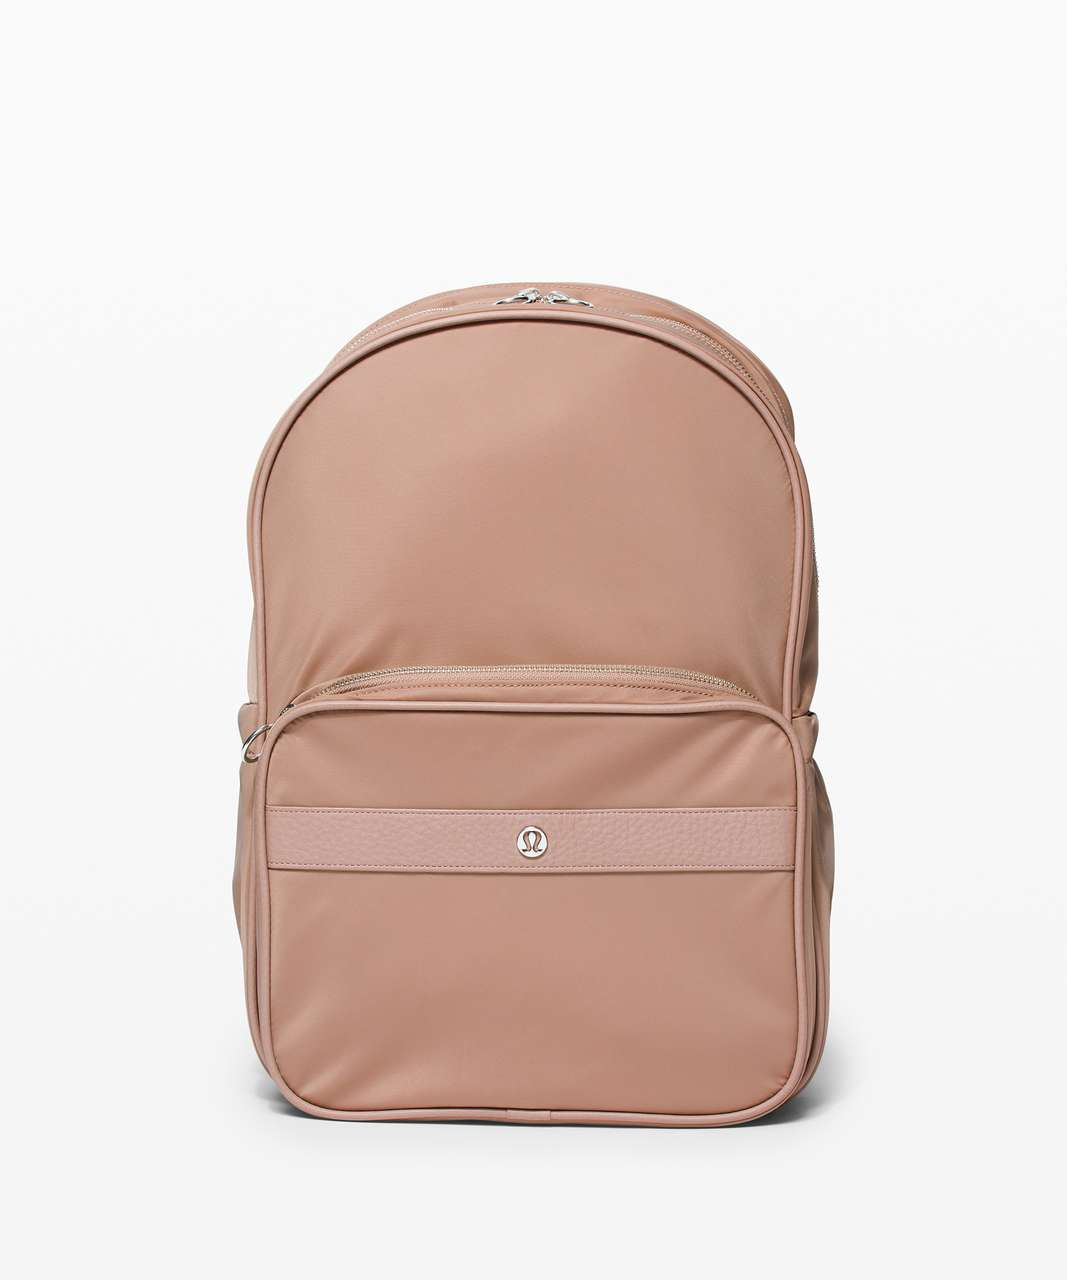 Lululemon Now and Always Backpack *18L - Soft Sand / Misty Shell